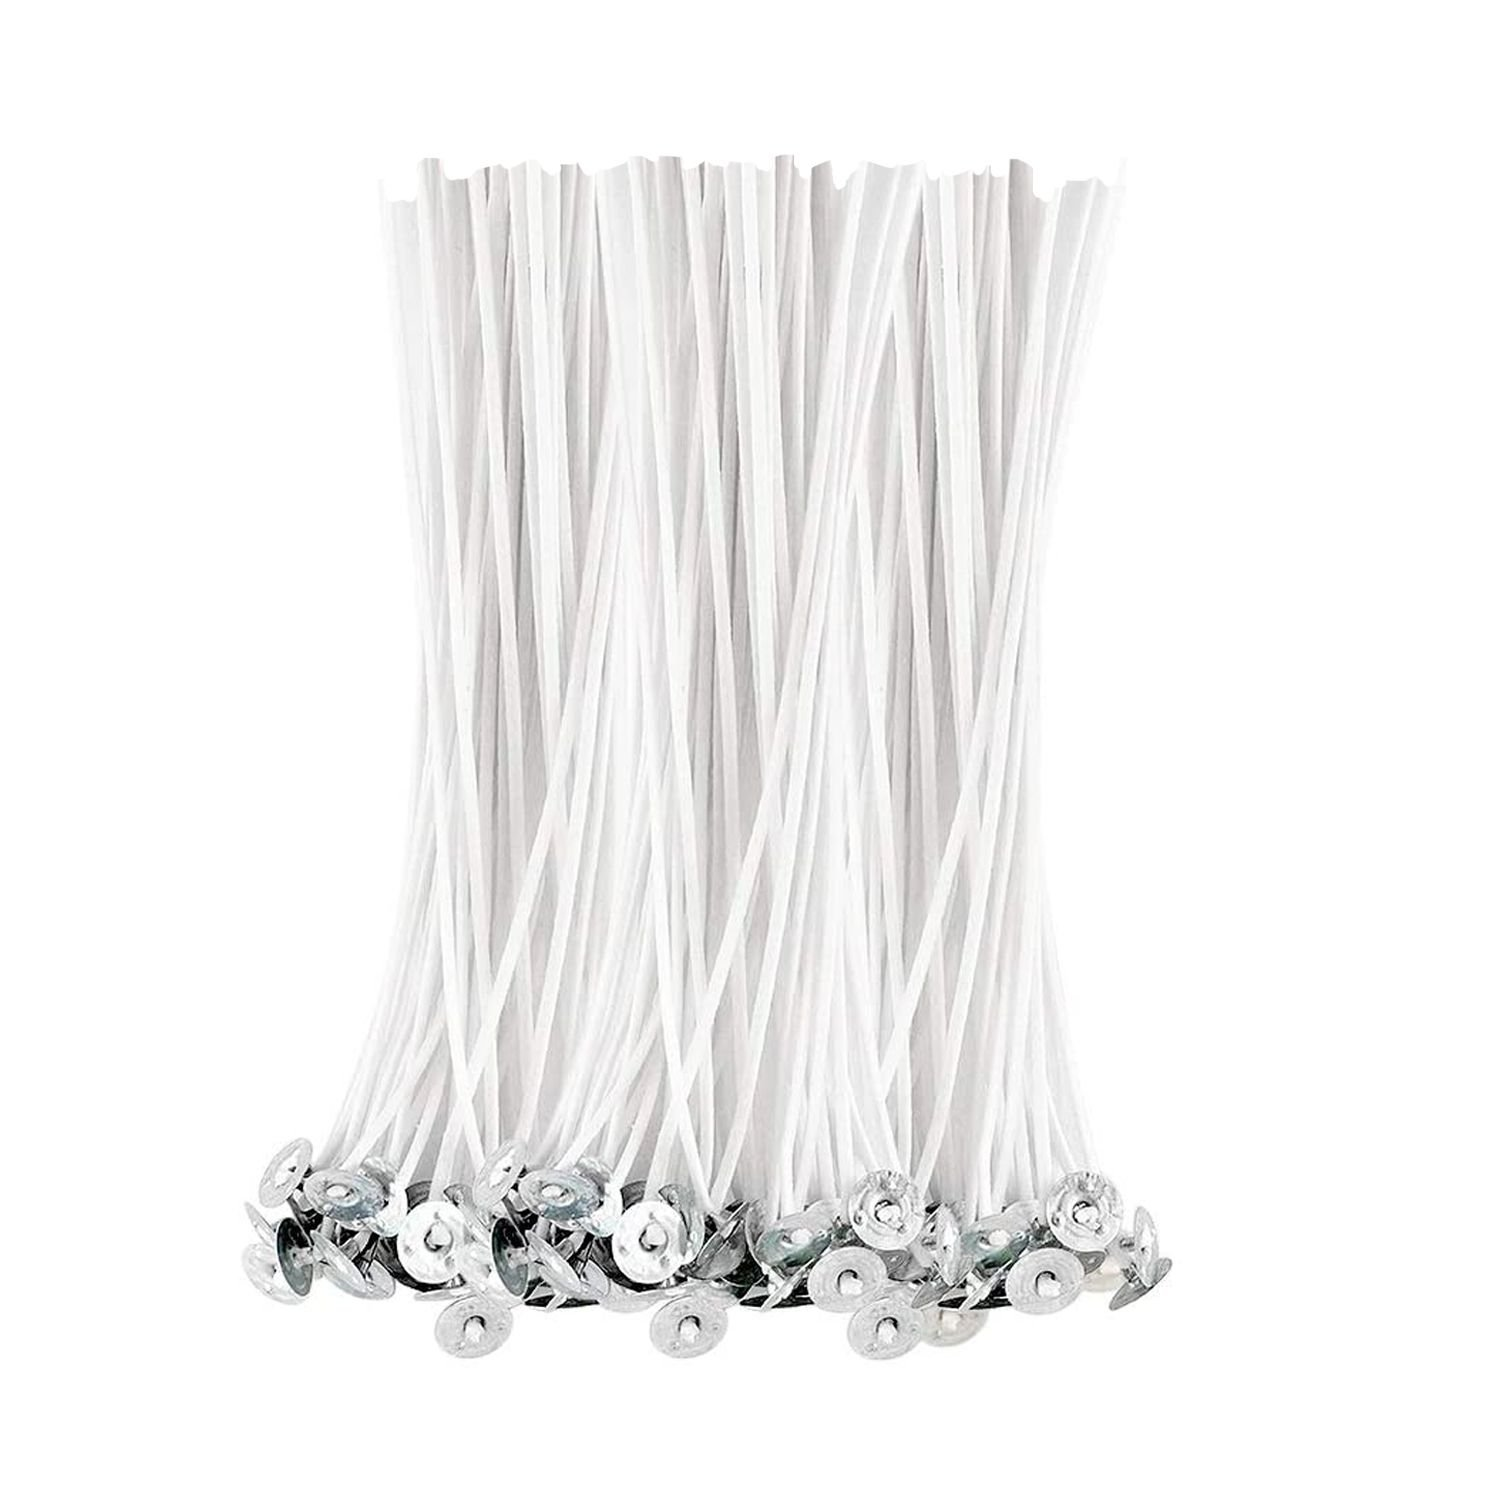 Candle-Wicks-6-Inch-Cotton-Wicks-150-Pcs